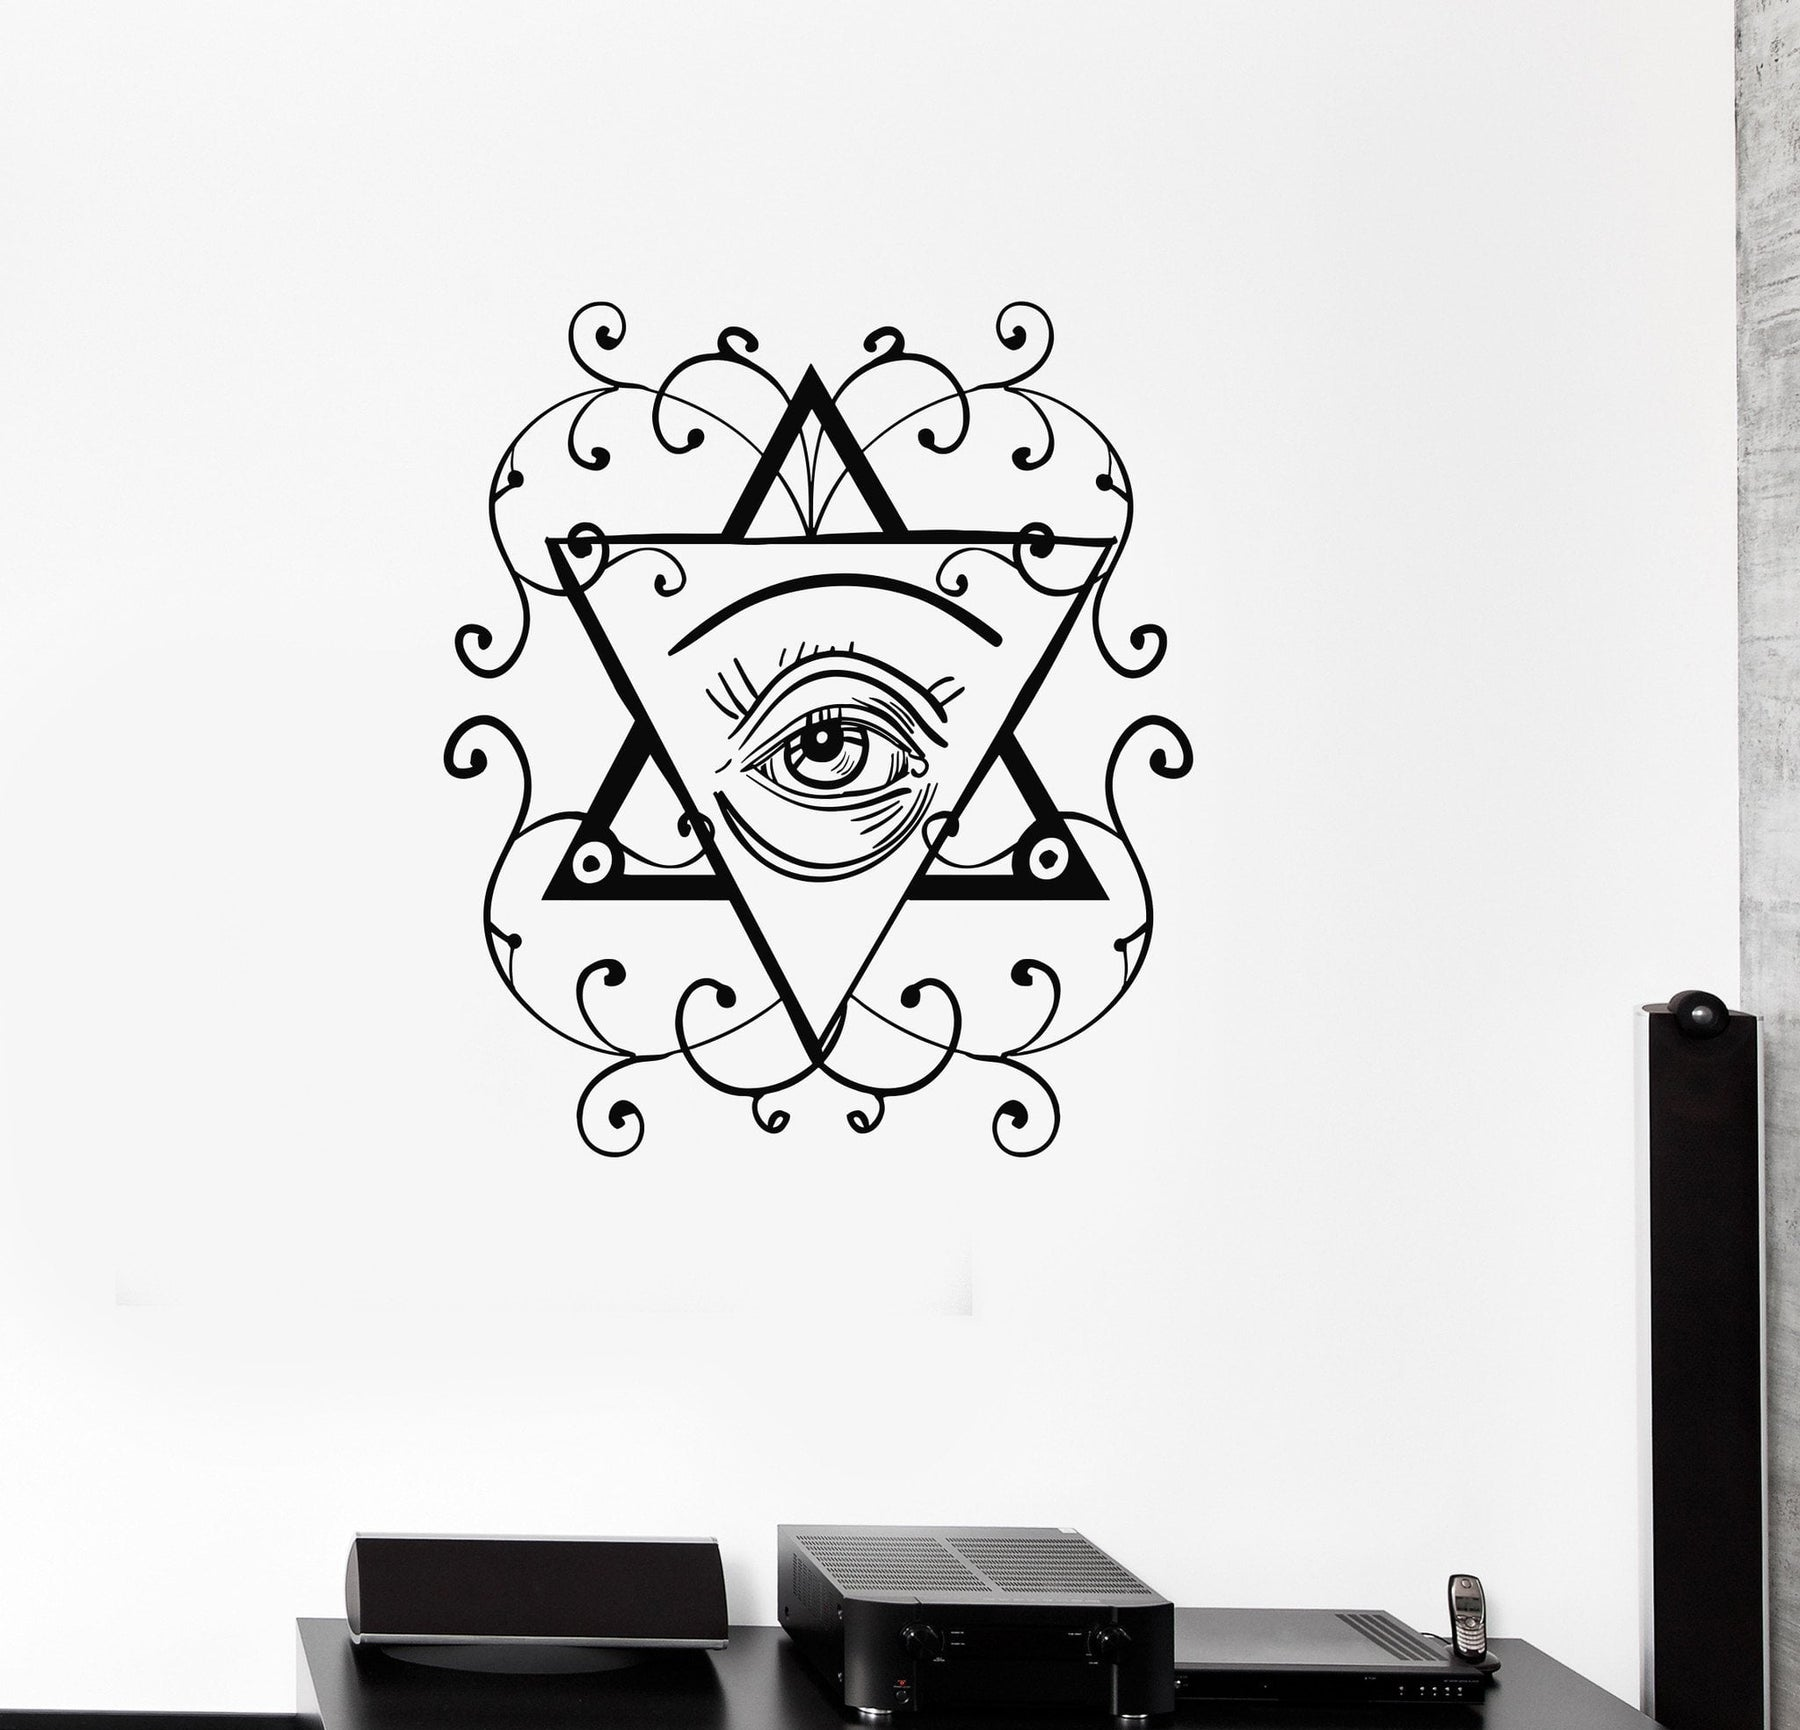 Details about  /Vinyl Decal Pyramid Masons Freemasons Conspiracy Theory Wall Stickers ig3365